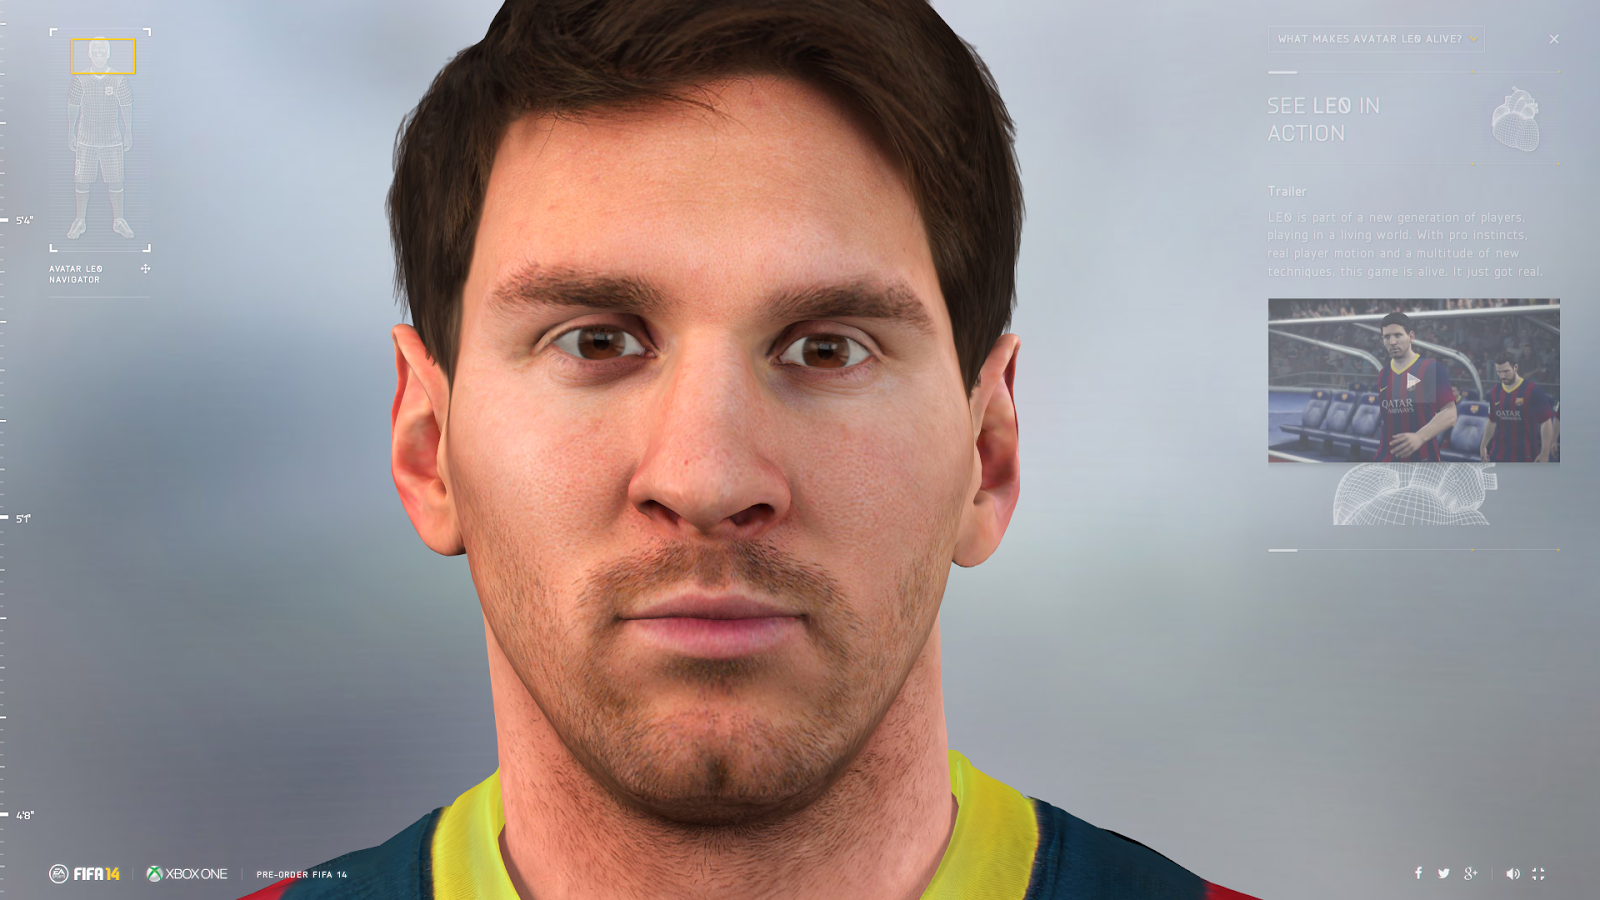 Life Size Messi LEO avatar 2014 14 Barcelona Digital 3D interaction EA